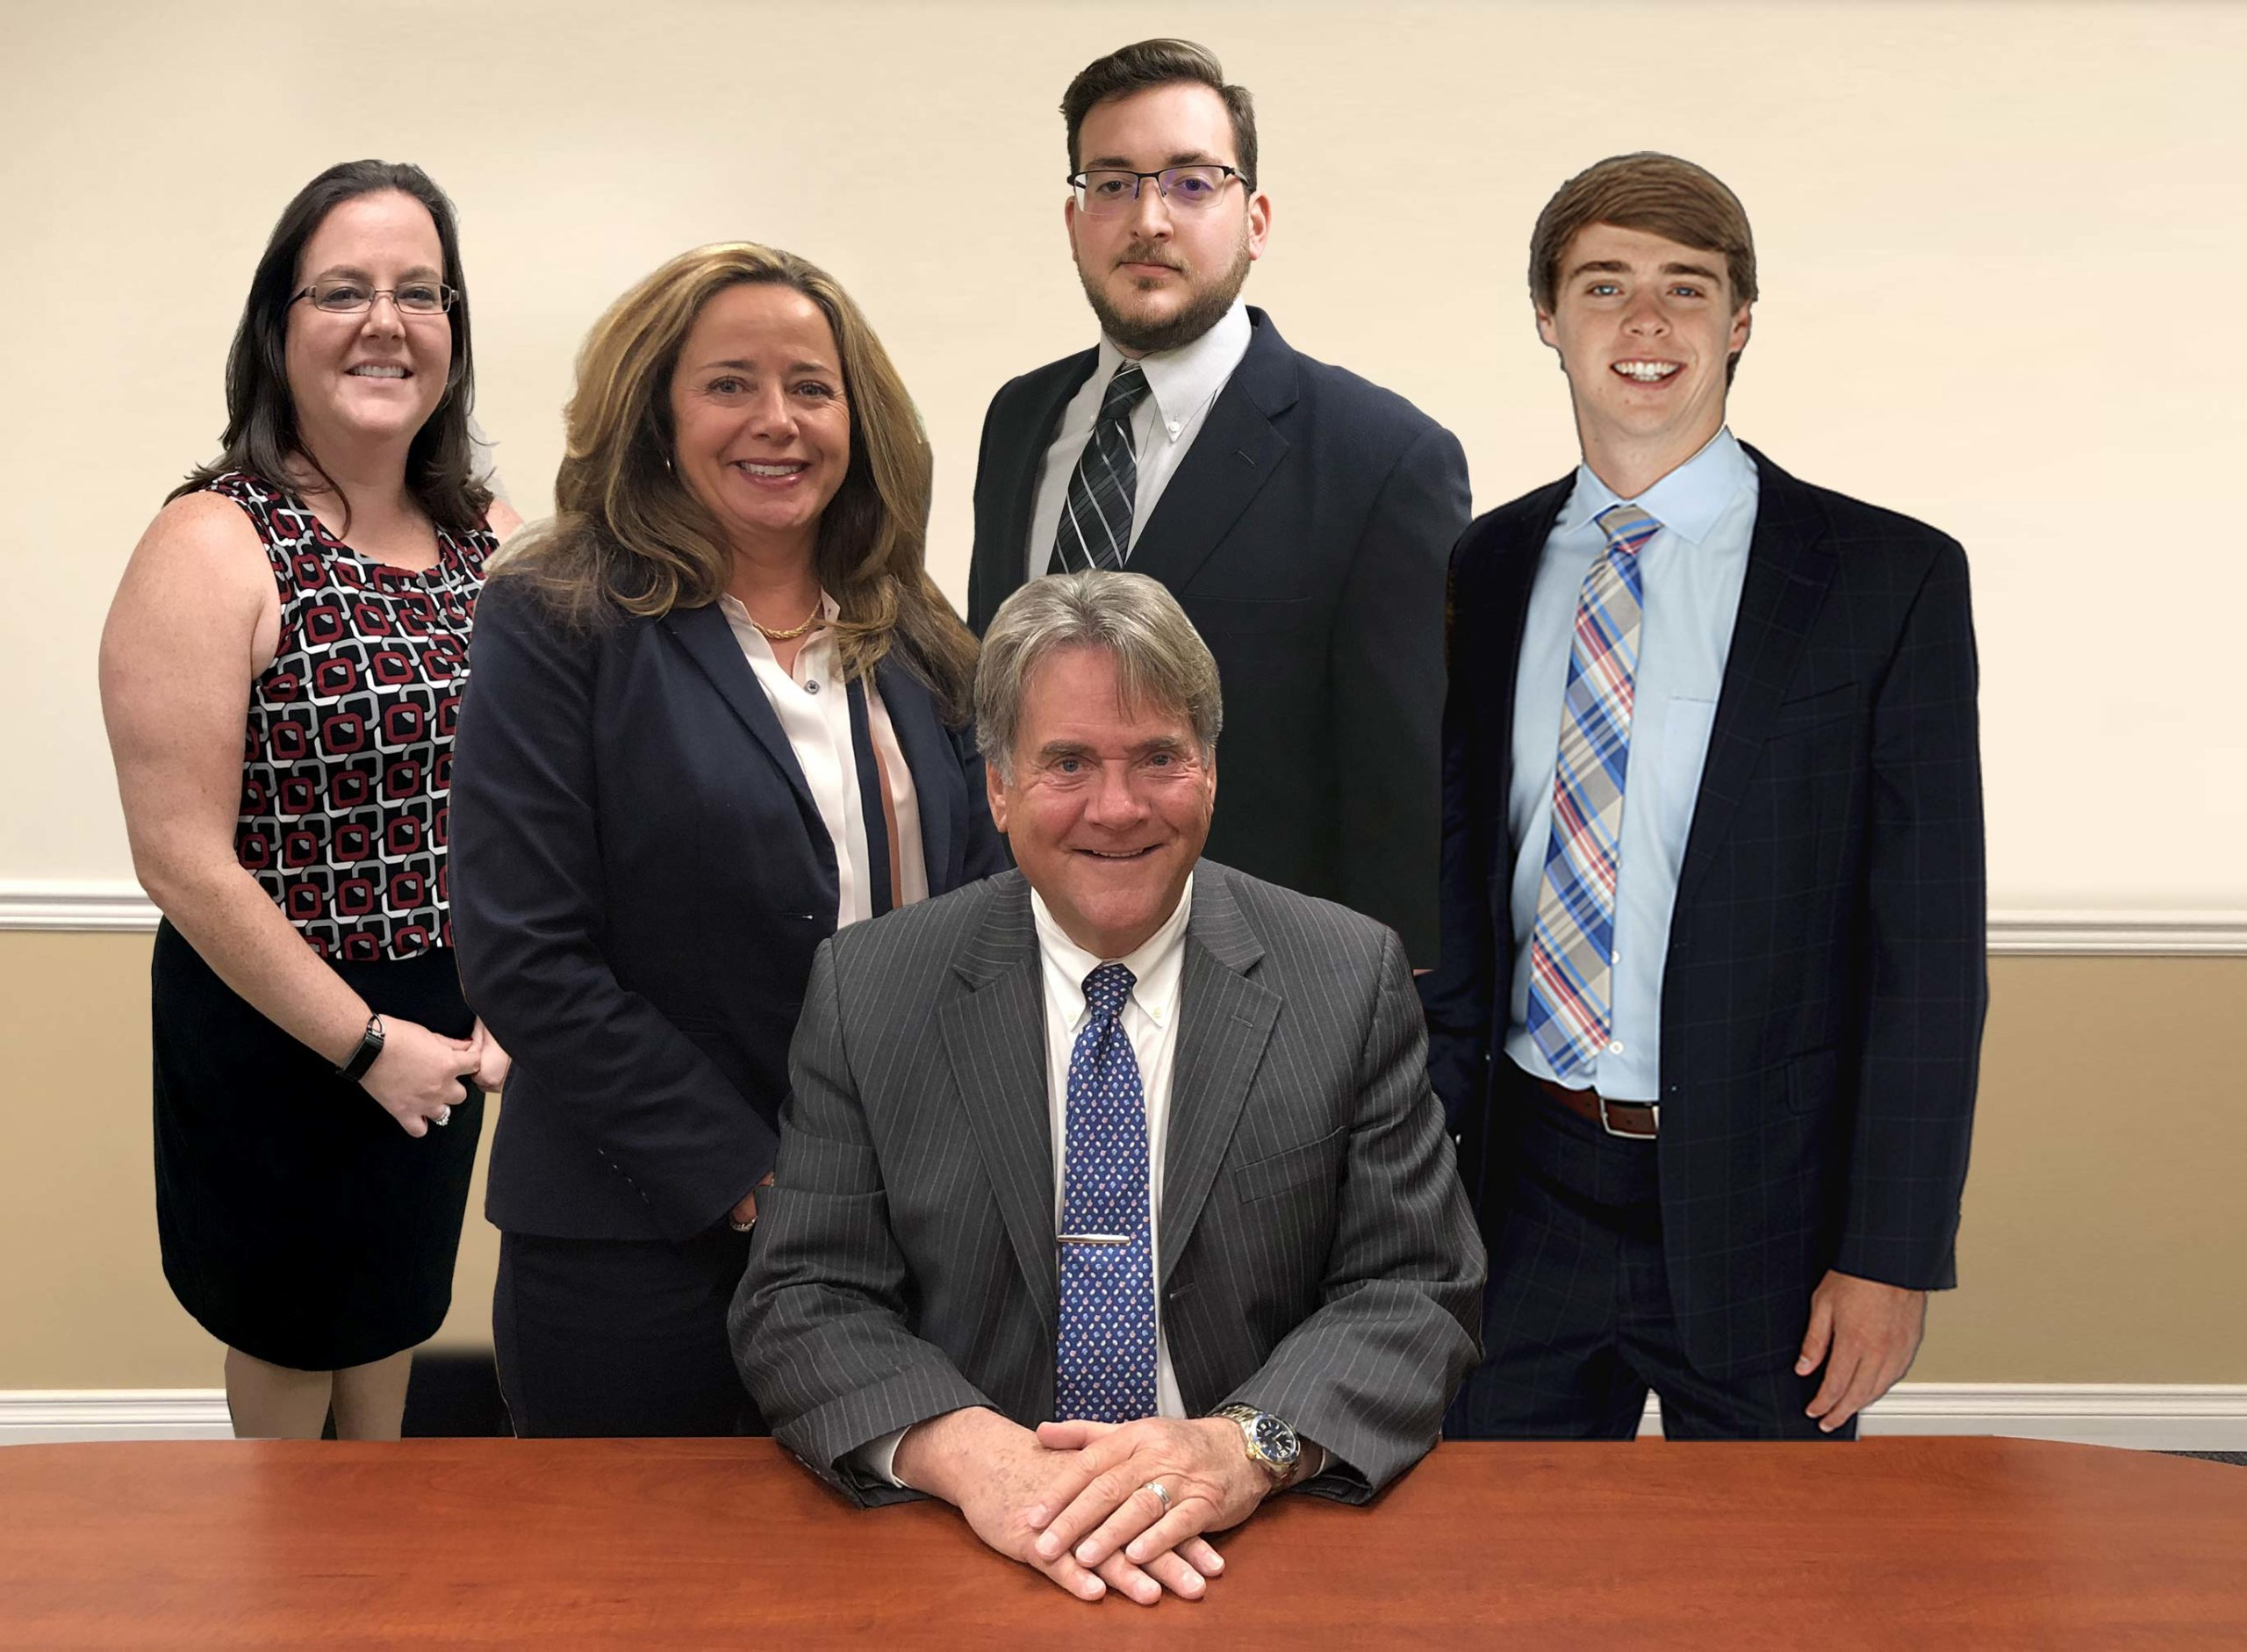 Edmunds Law Firm